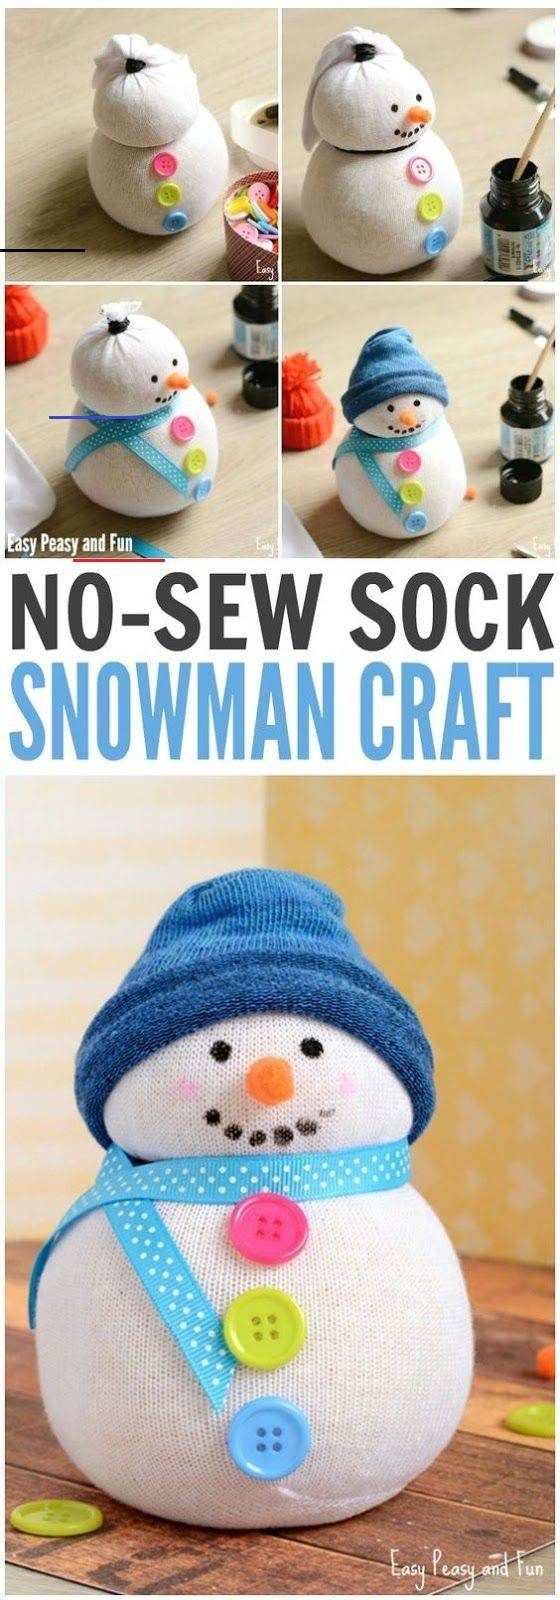 No-Sew Sock Snowman Craft - Easy Peasy and Fun No-Sew Sock Snowman Craft - Easy ...